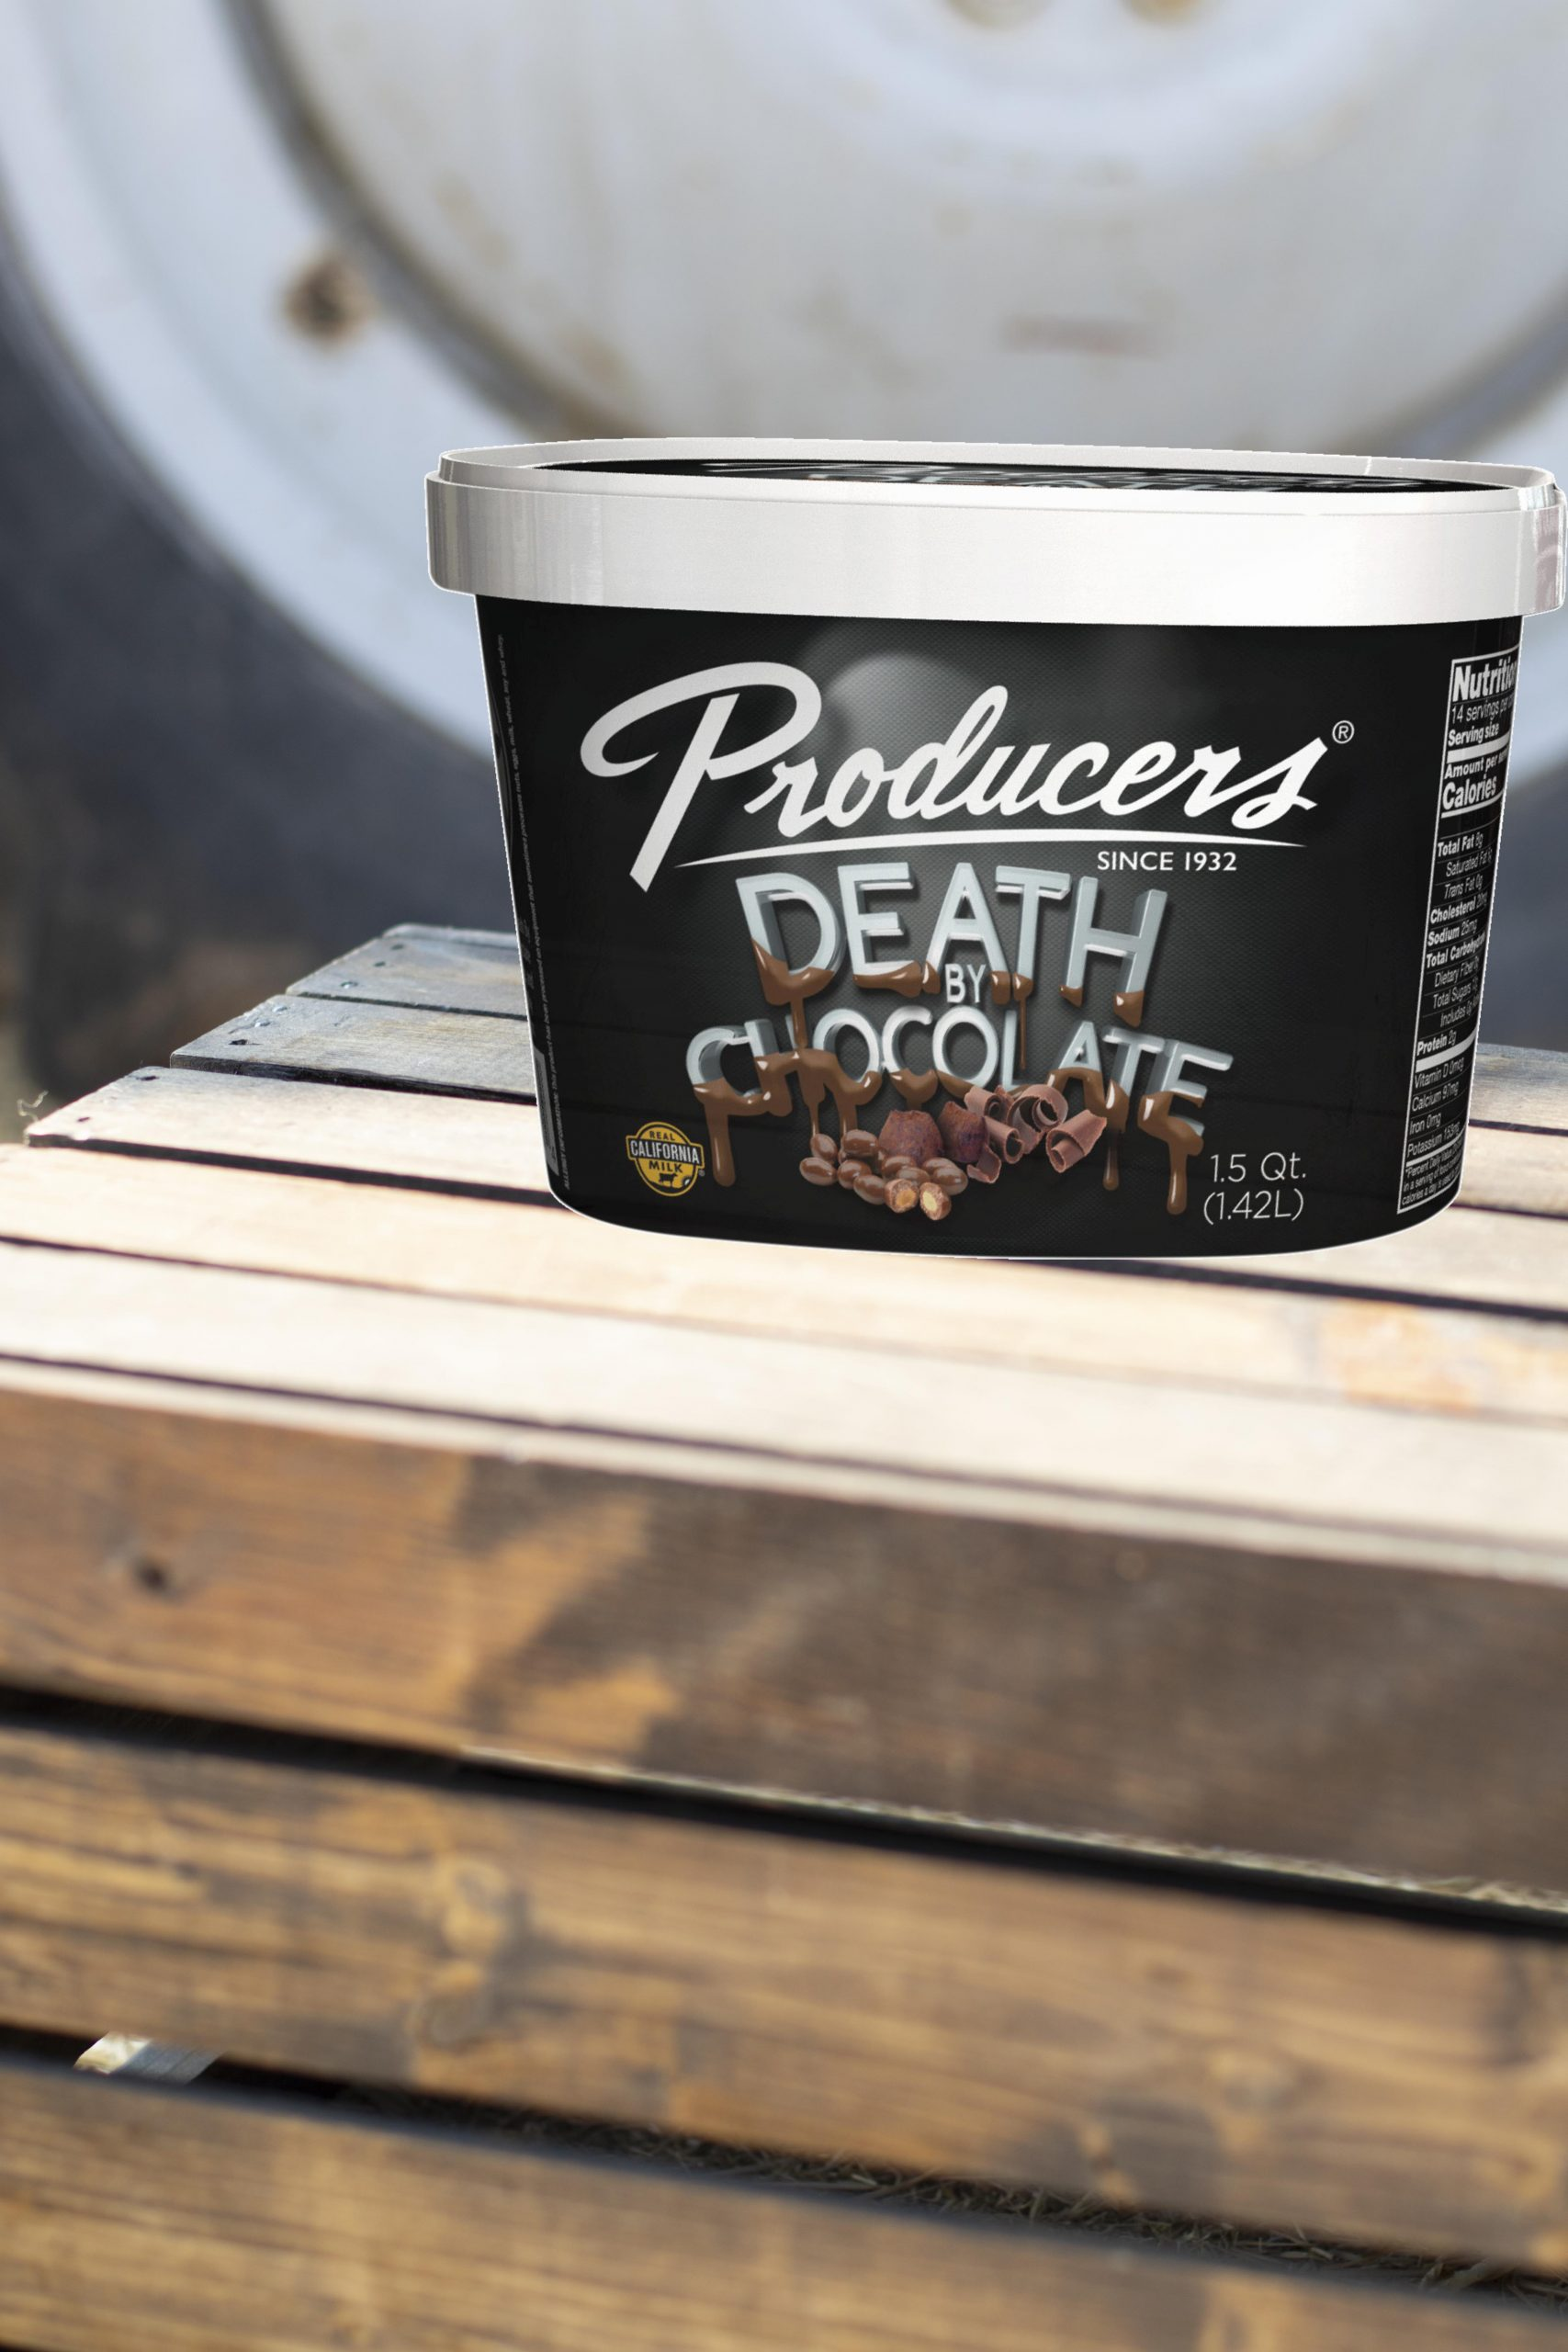 Death By Chocolate Producers Ice Cream sitting on wood in front of a tractor.